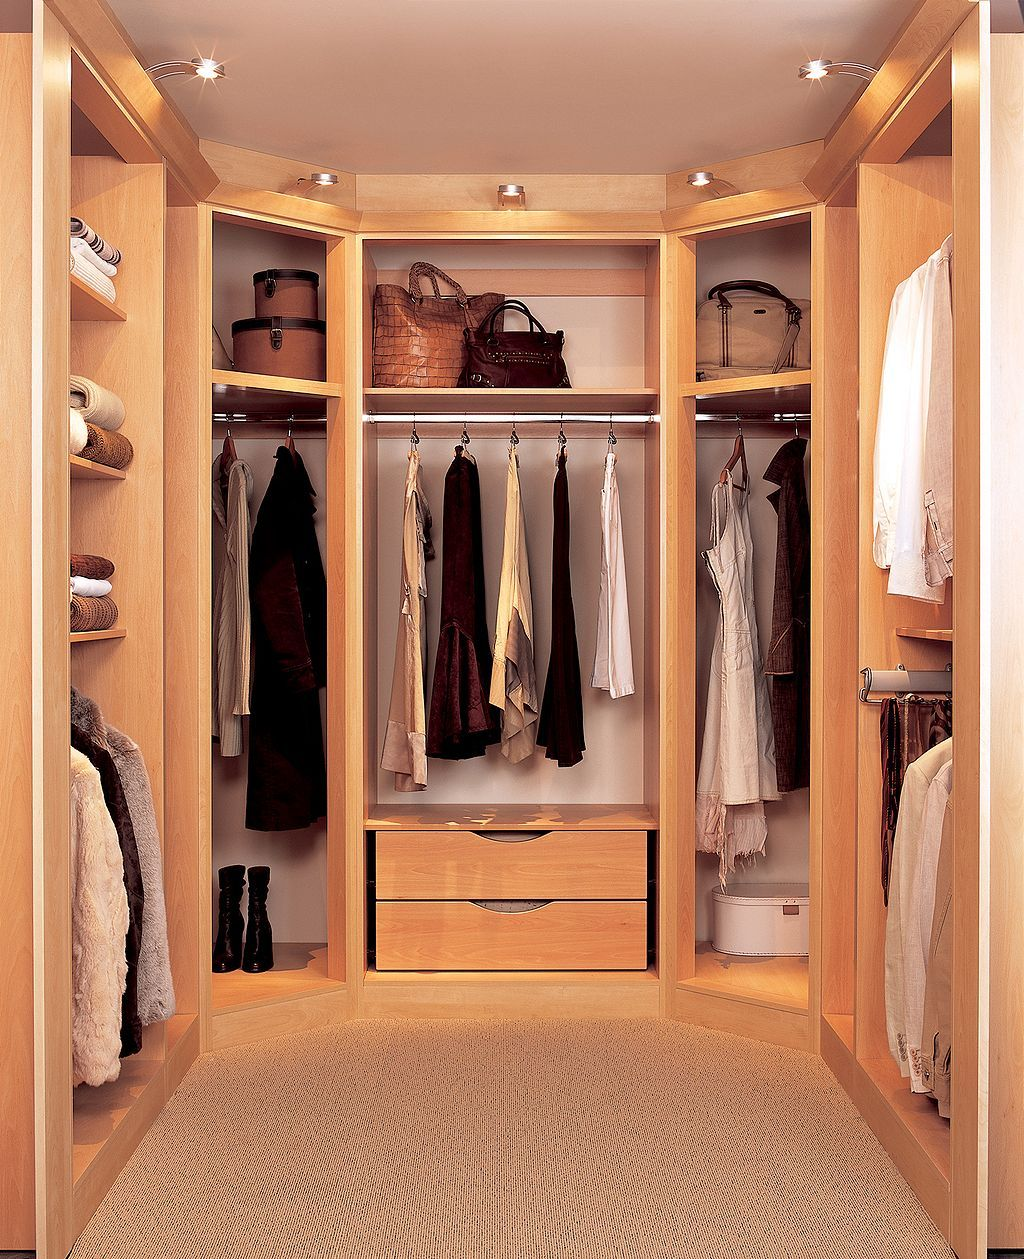 Awesome 40 Clever Modern Bedroom Storage Ideas Https Kidmagz Com 40 Clever Modern Bedroom Storag Home Depot Closet Organizer Home Depot Closet Closet Layout